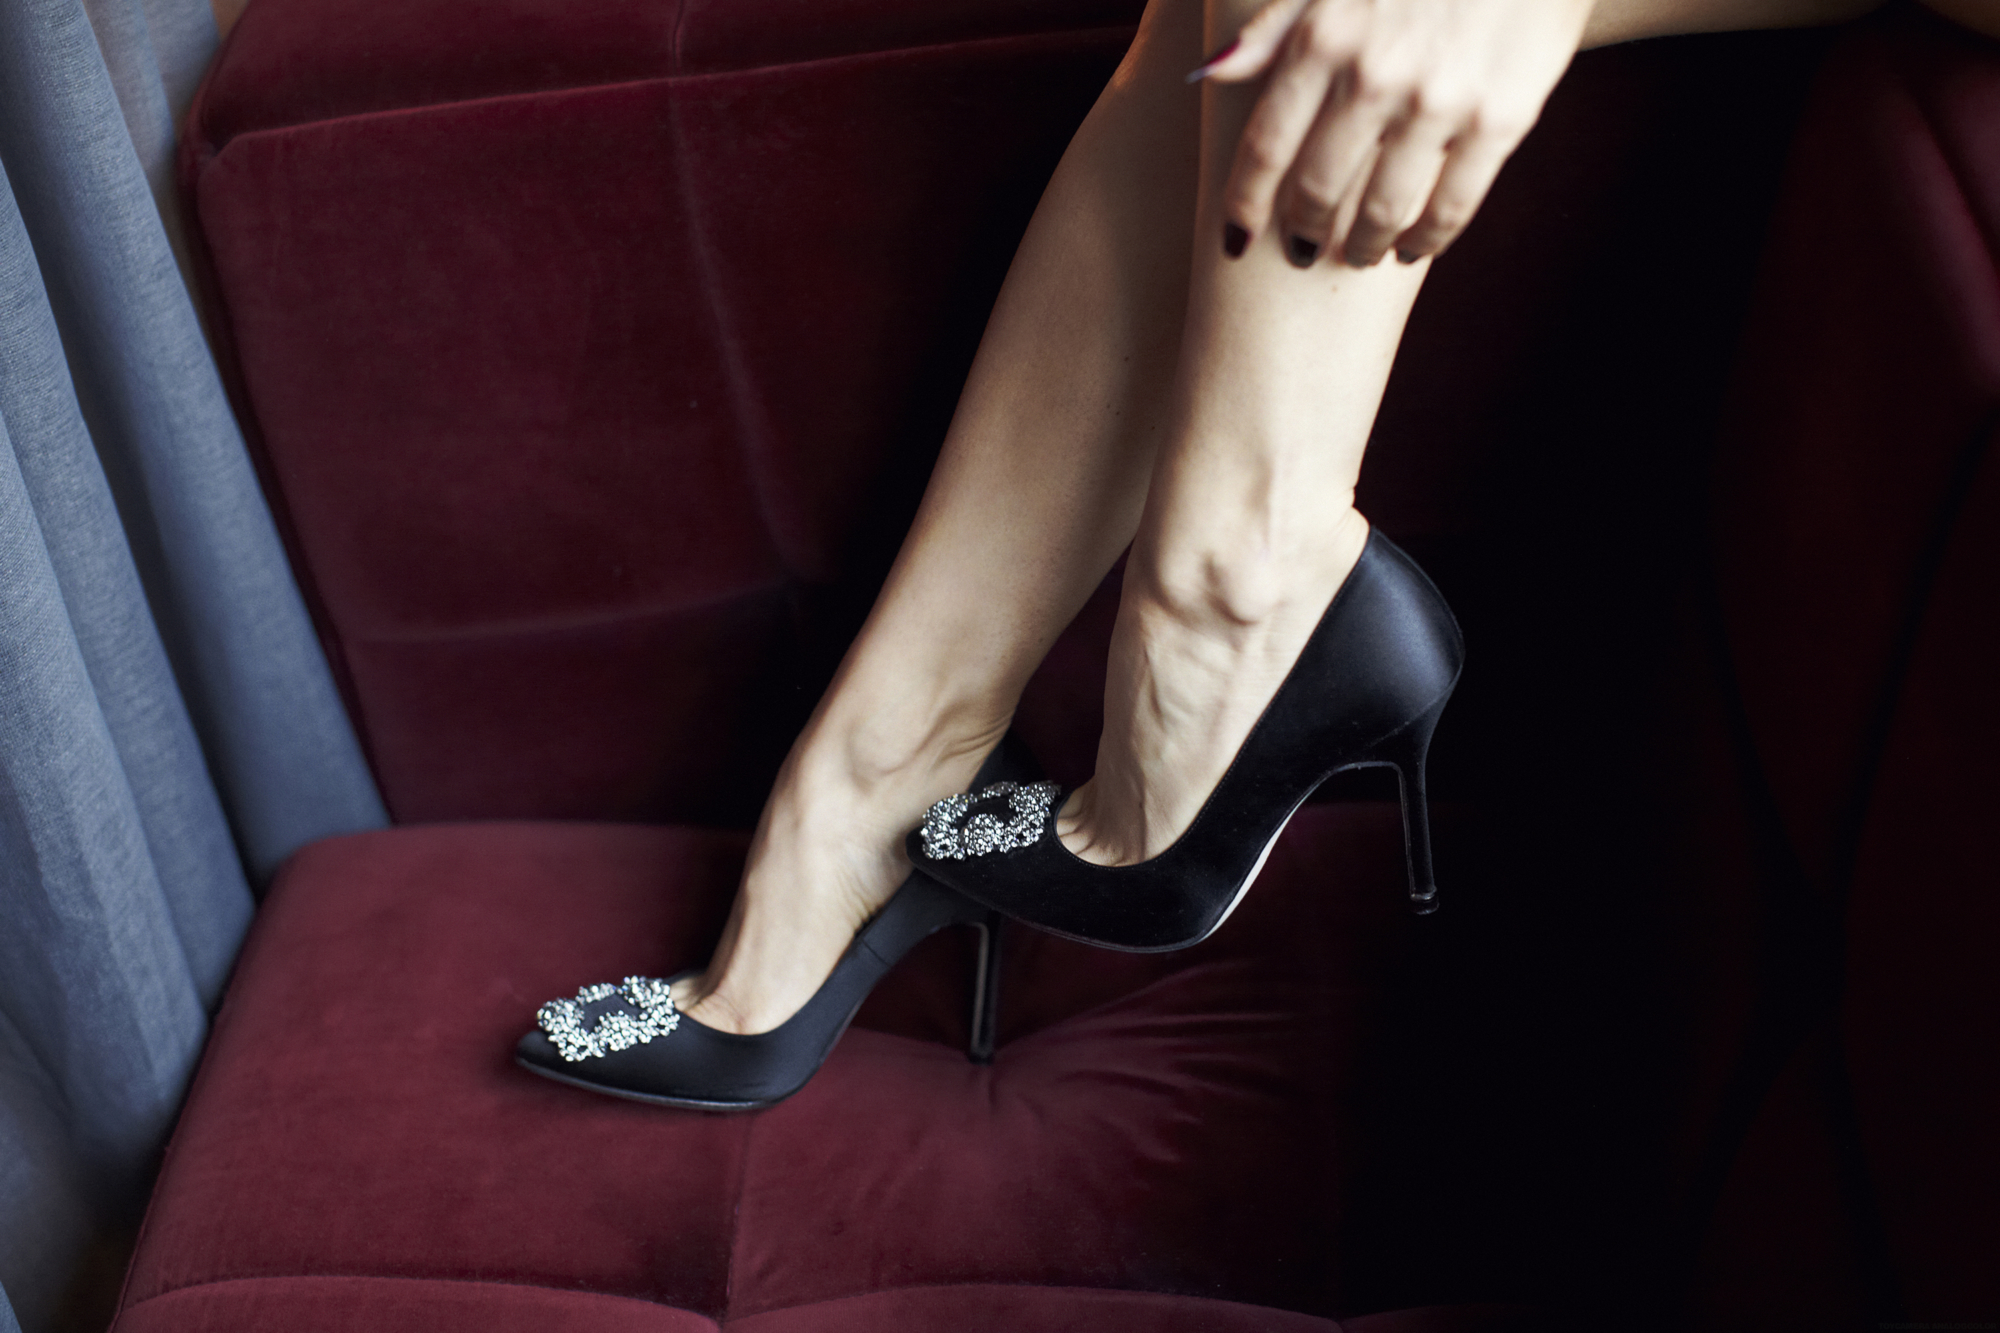 Inside the Manolo Blahnik Documentary - Sex and the City - Carrie Bradshaw Manolo Blahnik Hangisi Shoes - wedding shoes